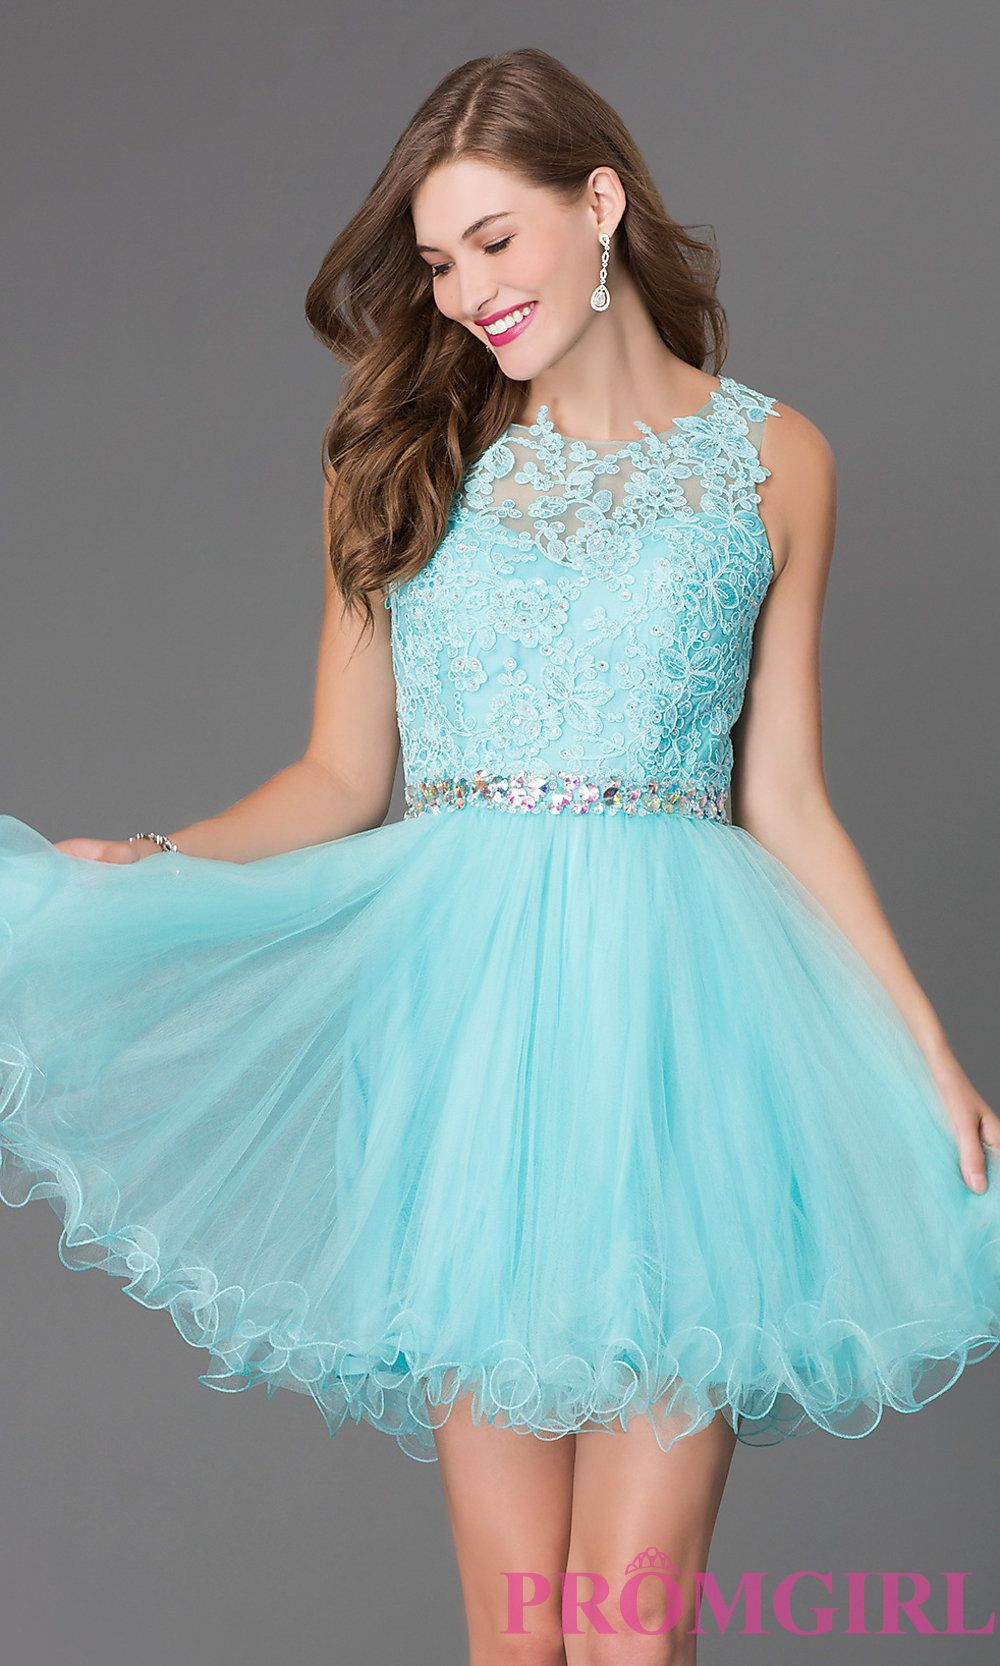 Lace Top for Prom